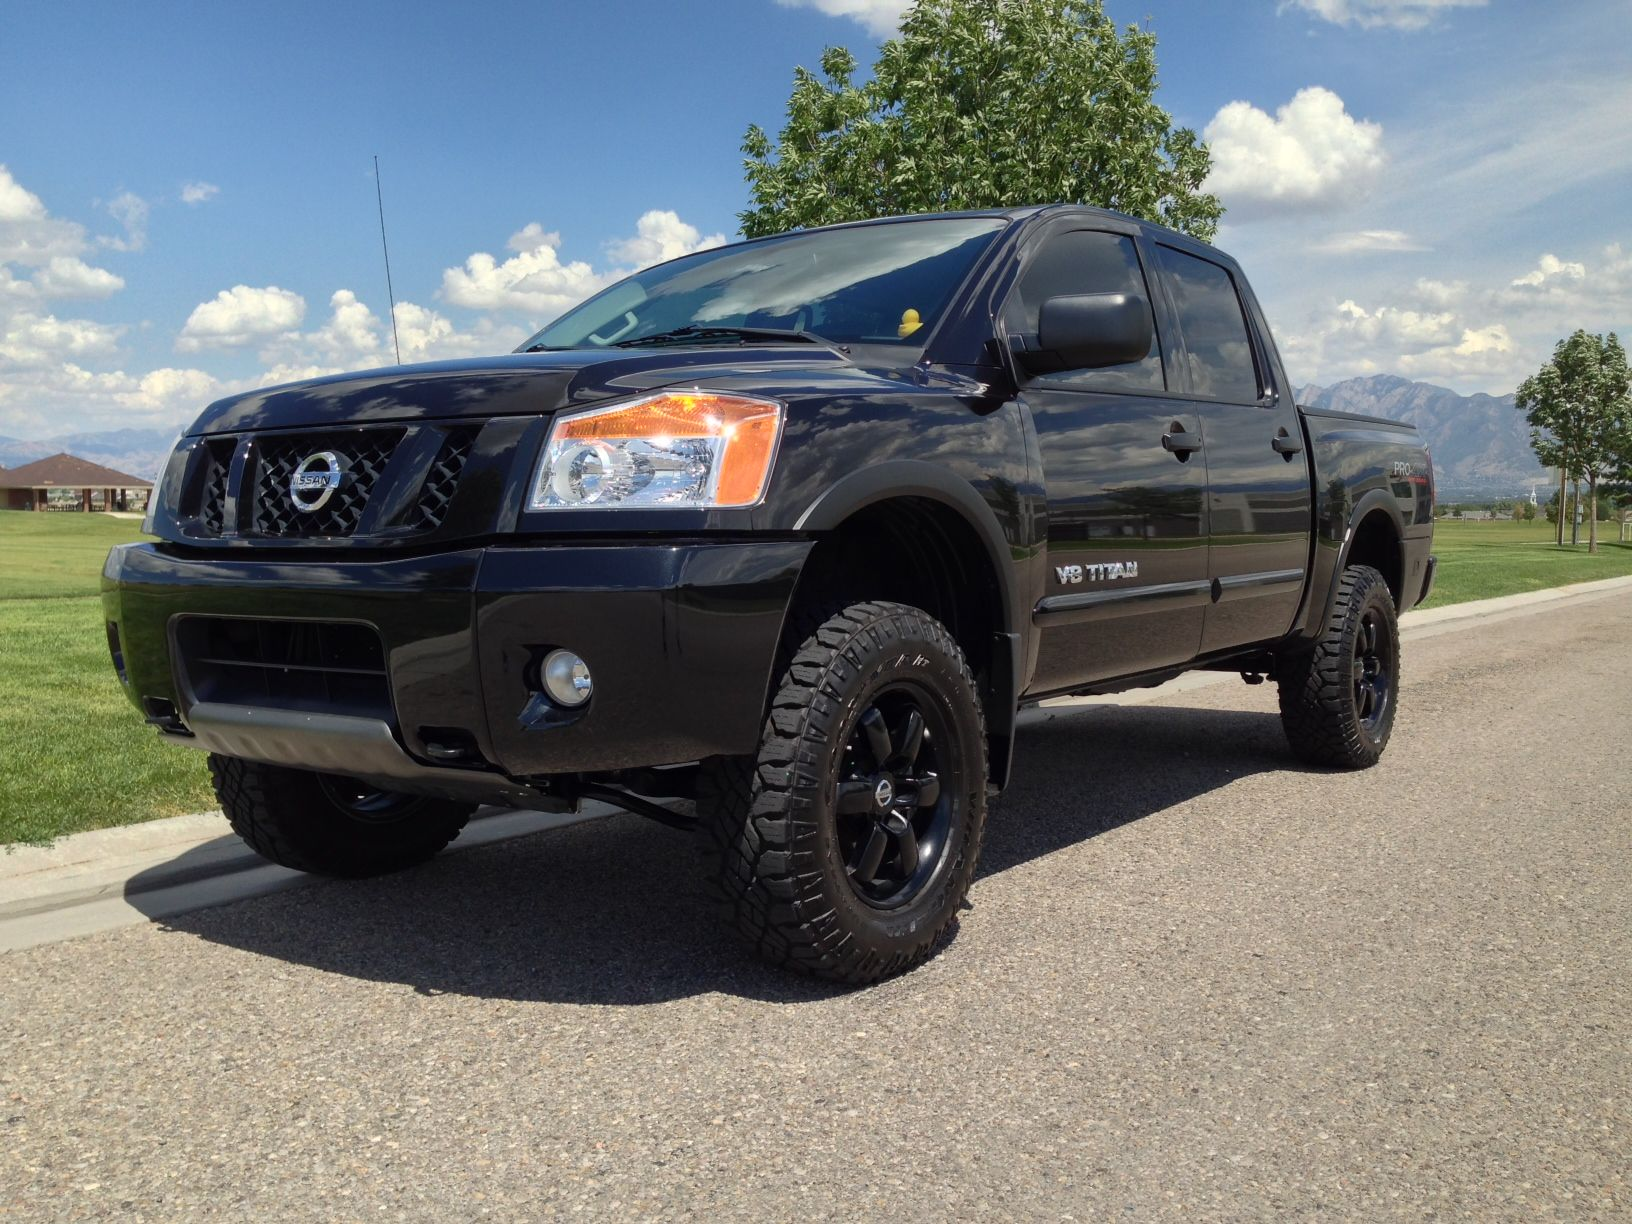 4 lift kit on this nissan titan tuff country lift kit. Black Bedroom Furniture Sets. Home Design Ideas